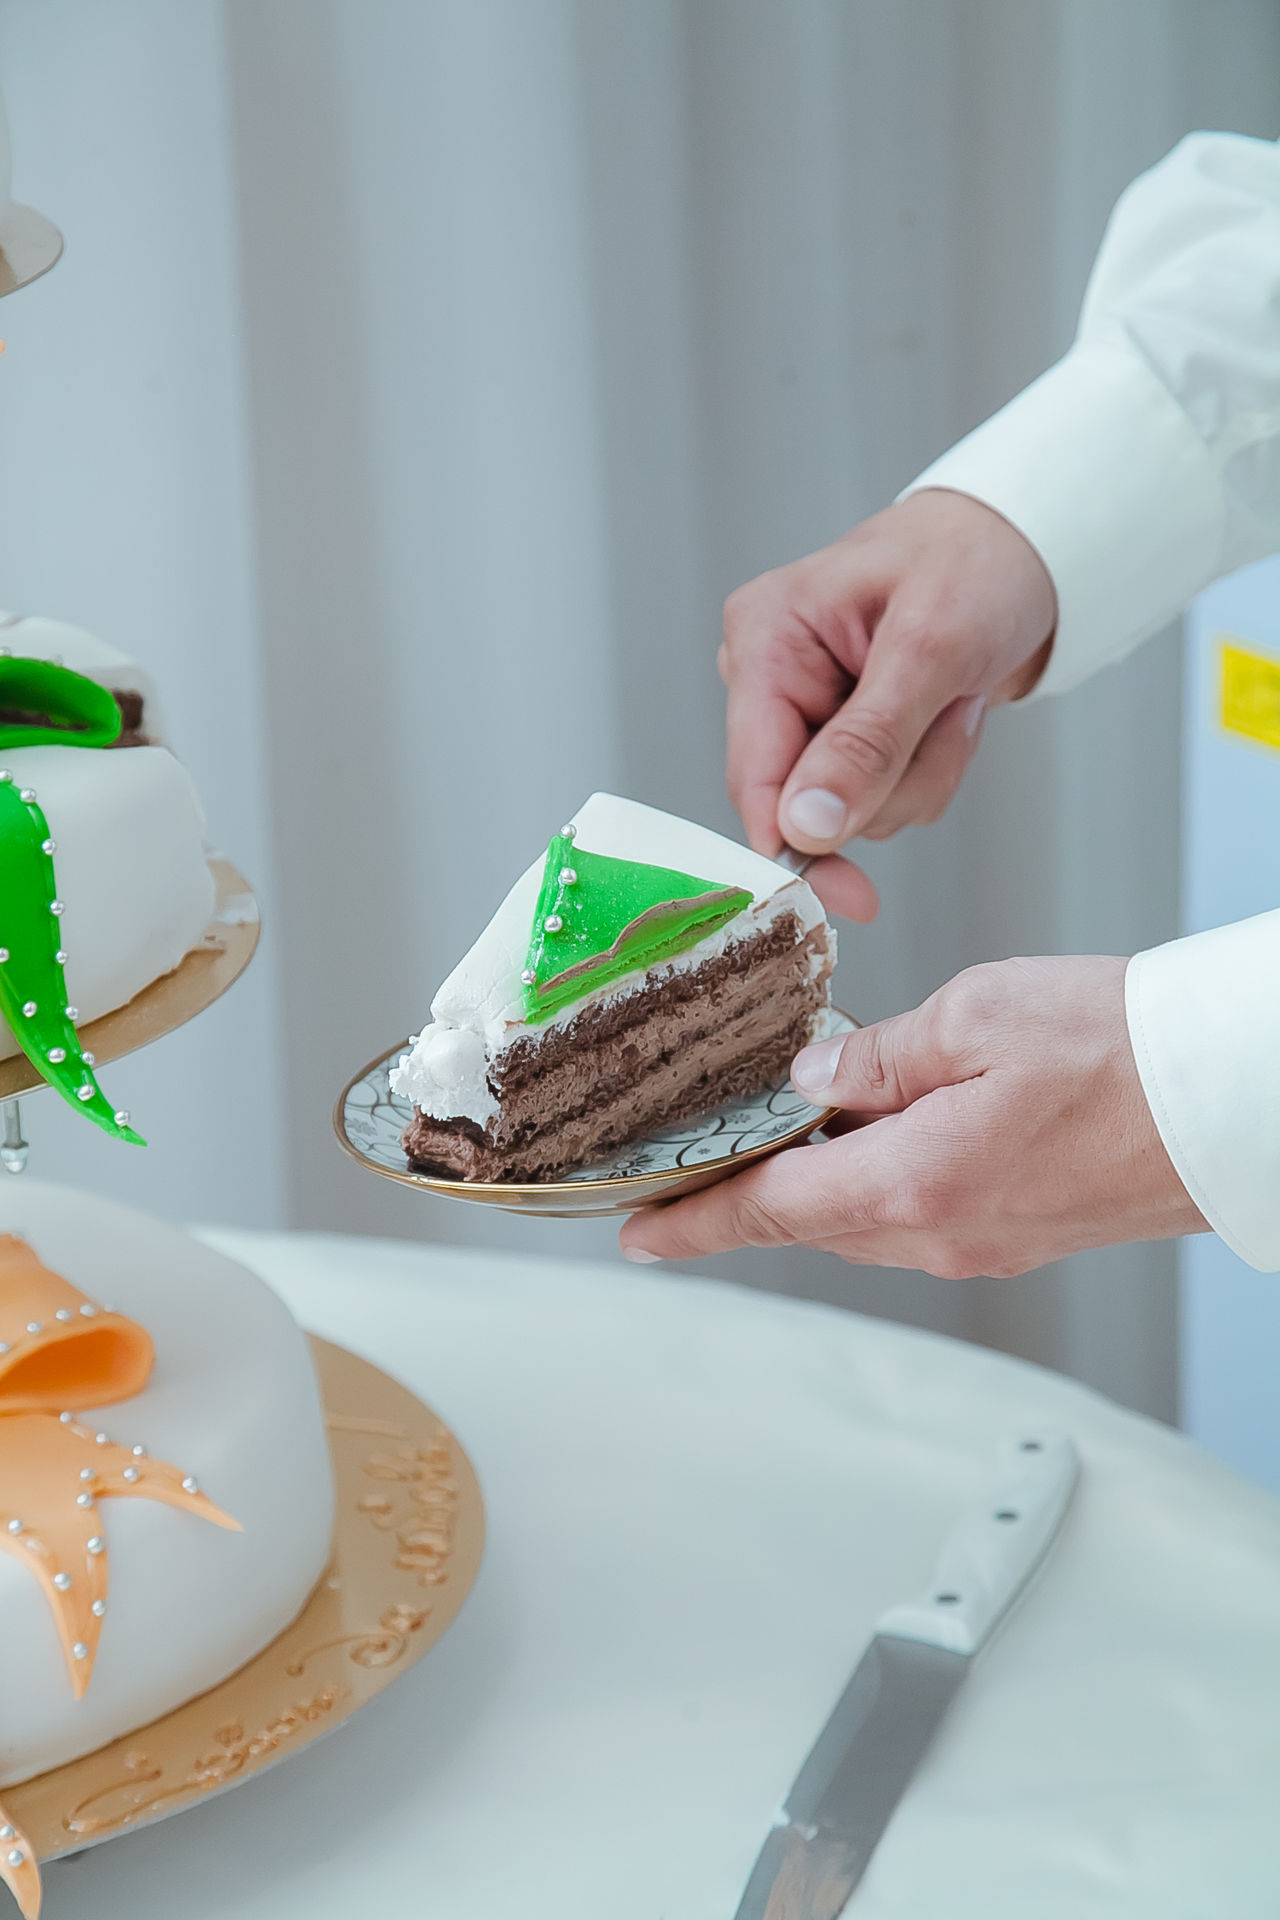 Check This Out Close-up Focus On Foreground Food Human Finger Person Personal Perspective Selective Focus Wedding Wedding Cake